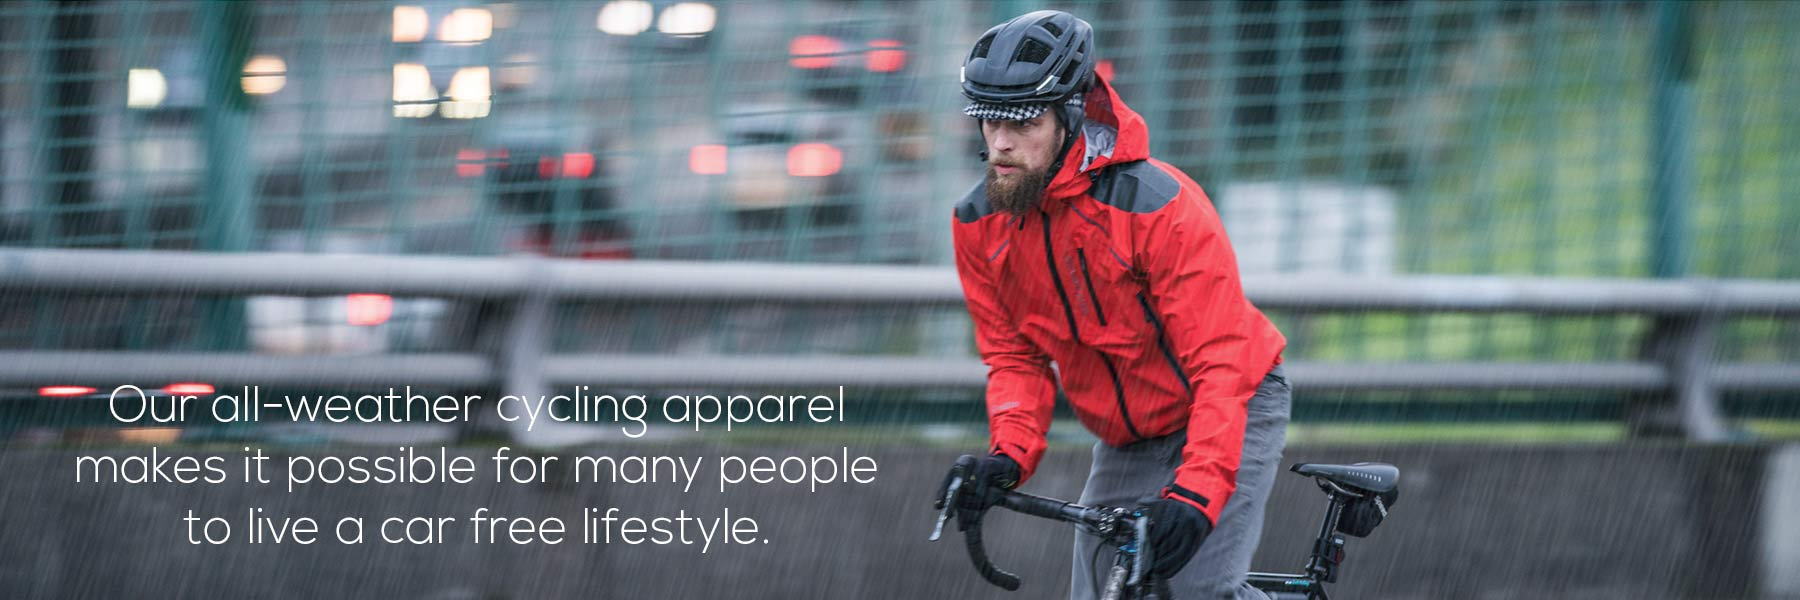 It's possible to live car-free with the right gear